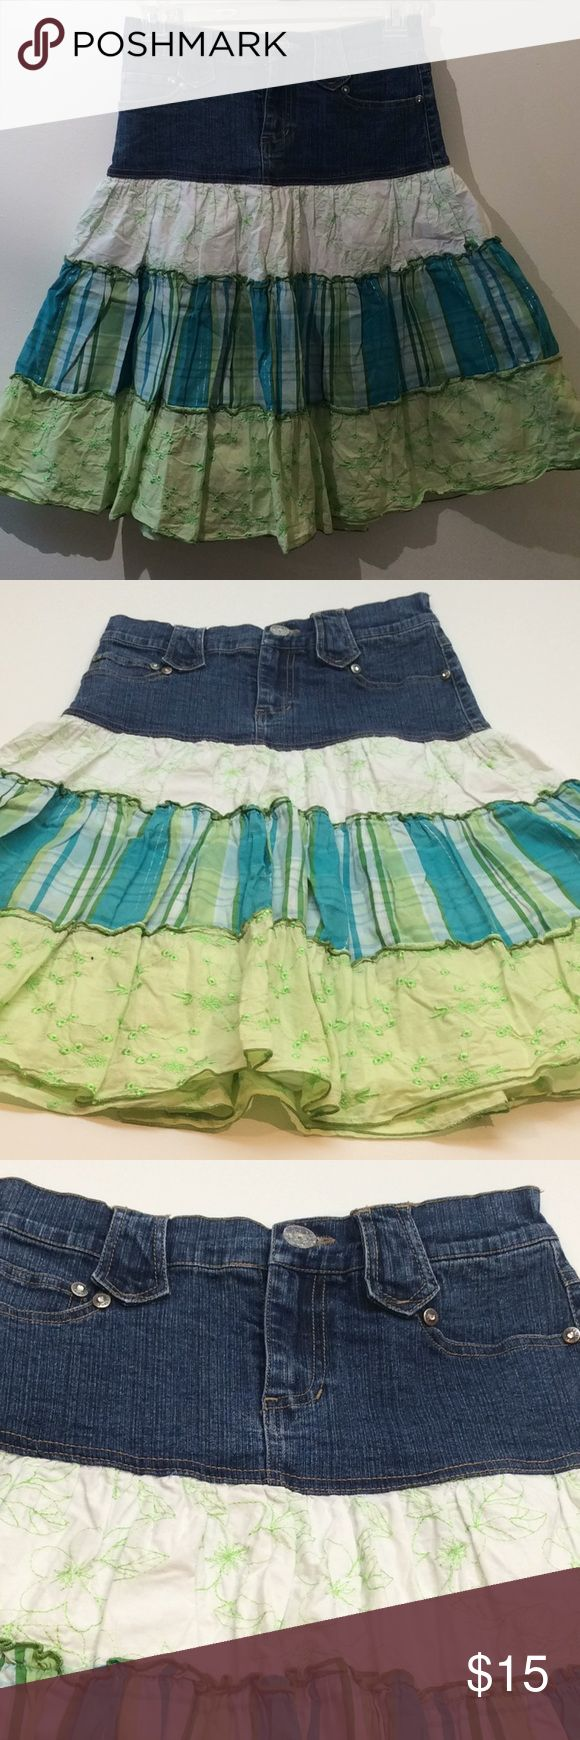 Candie's Denim and Cotton Bohemian Layered Skirt Plain and simple, this skirt is freaking adorable.  The downside is, the cotton skirt either needs to be ironed, or taken out of the dryer and hung slightly damp so as not to wrinkle. Do kids worry about wrinkled clothing anymore? Candie's Bottoms Skirts